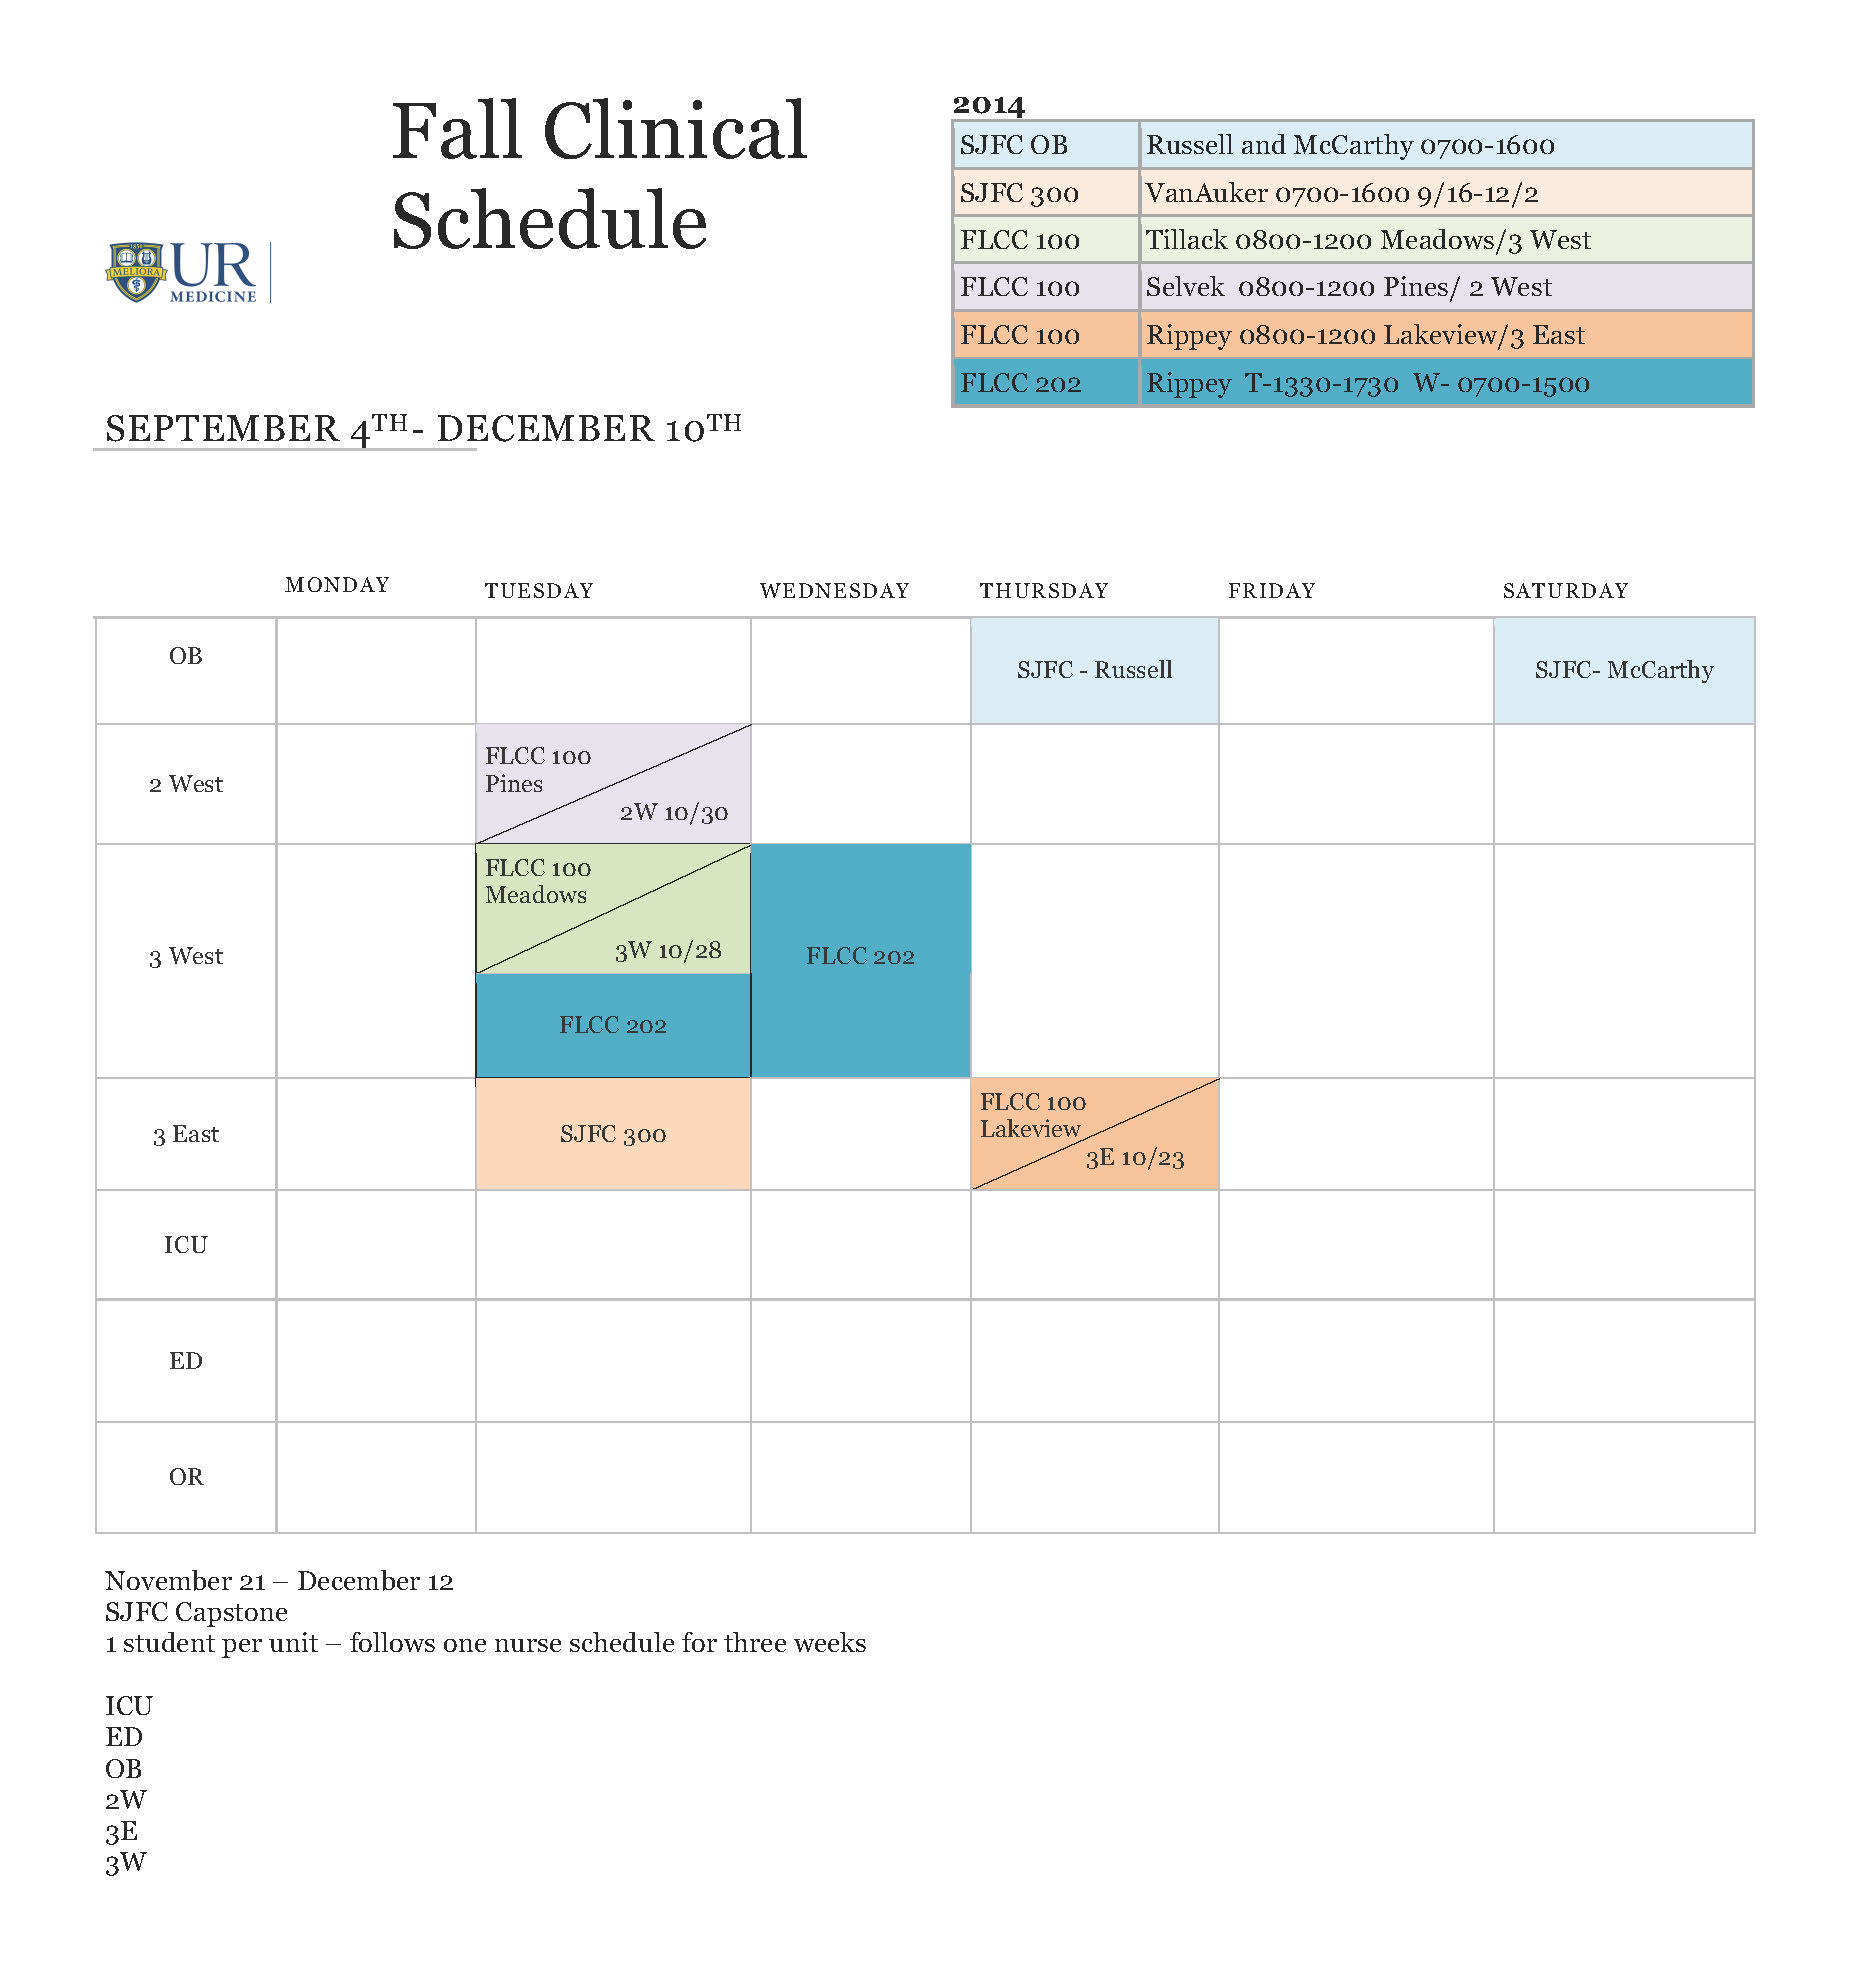 Fall Clinical Schedule